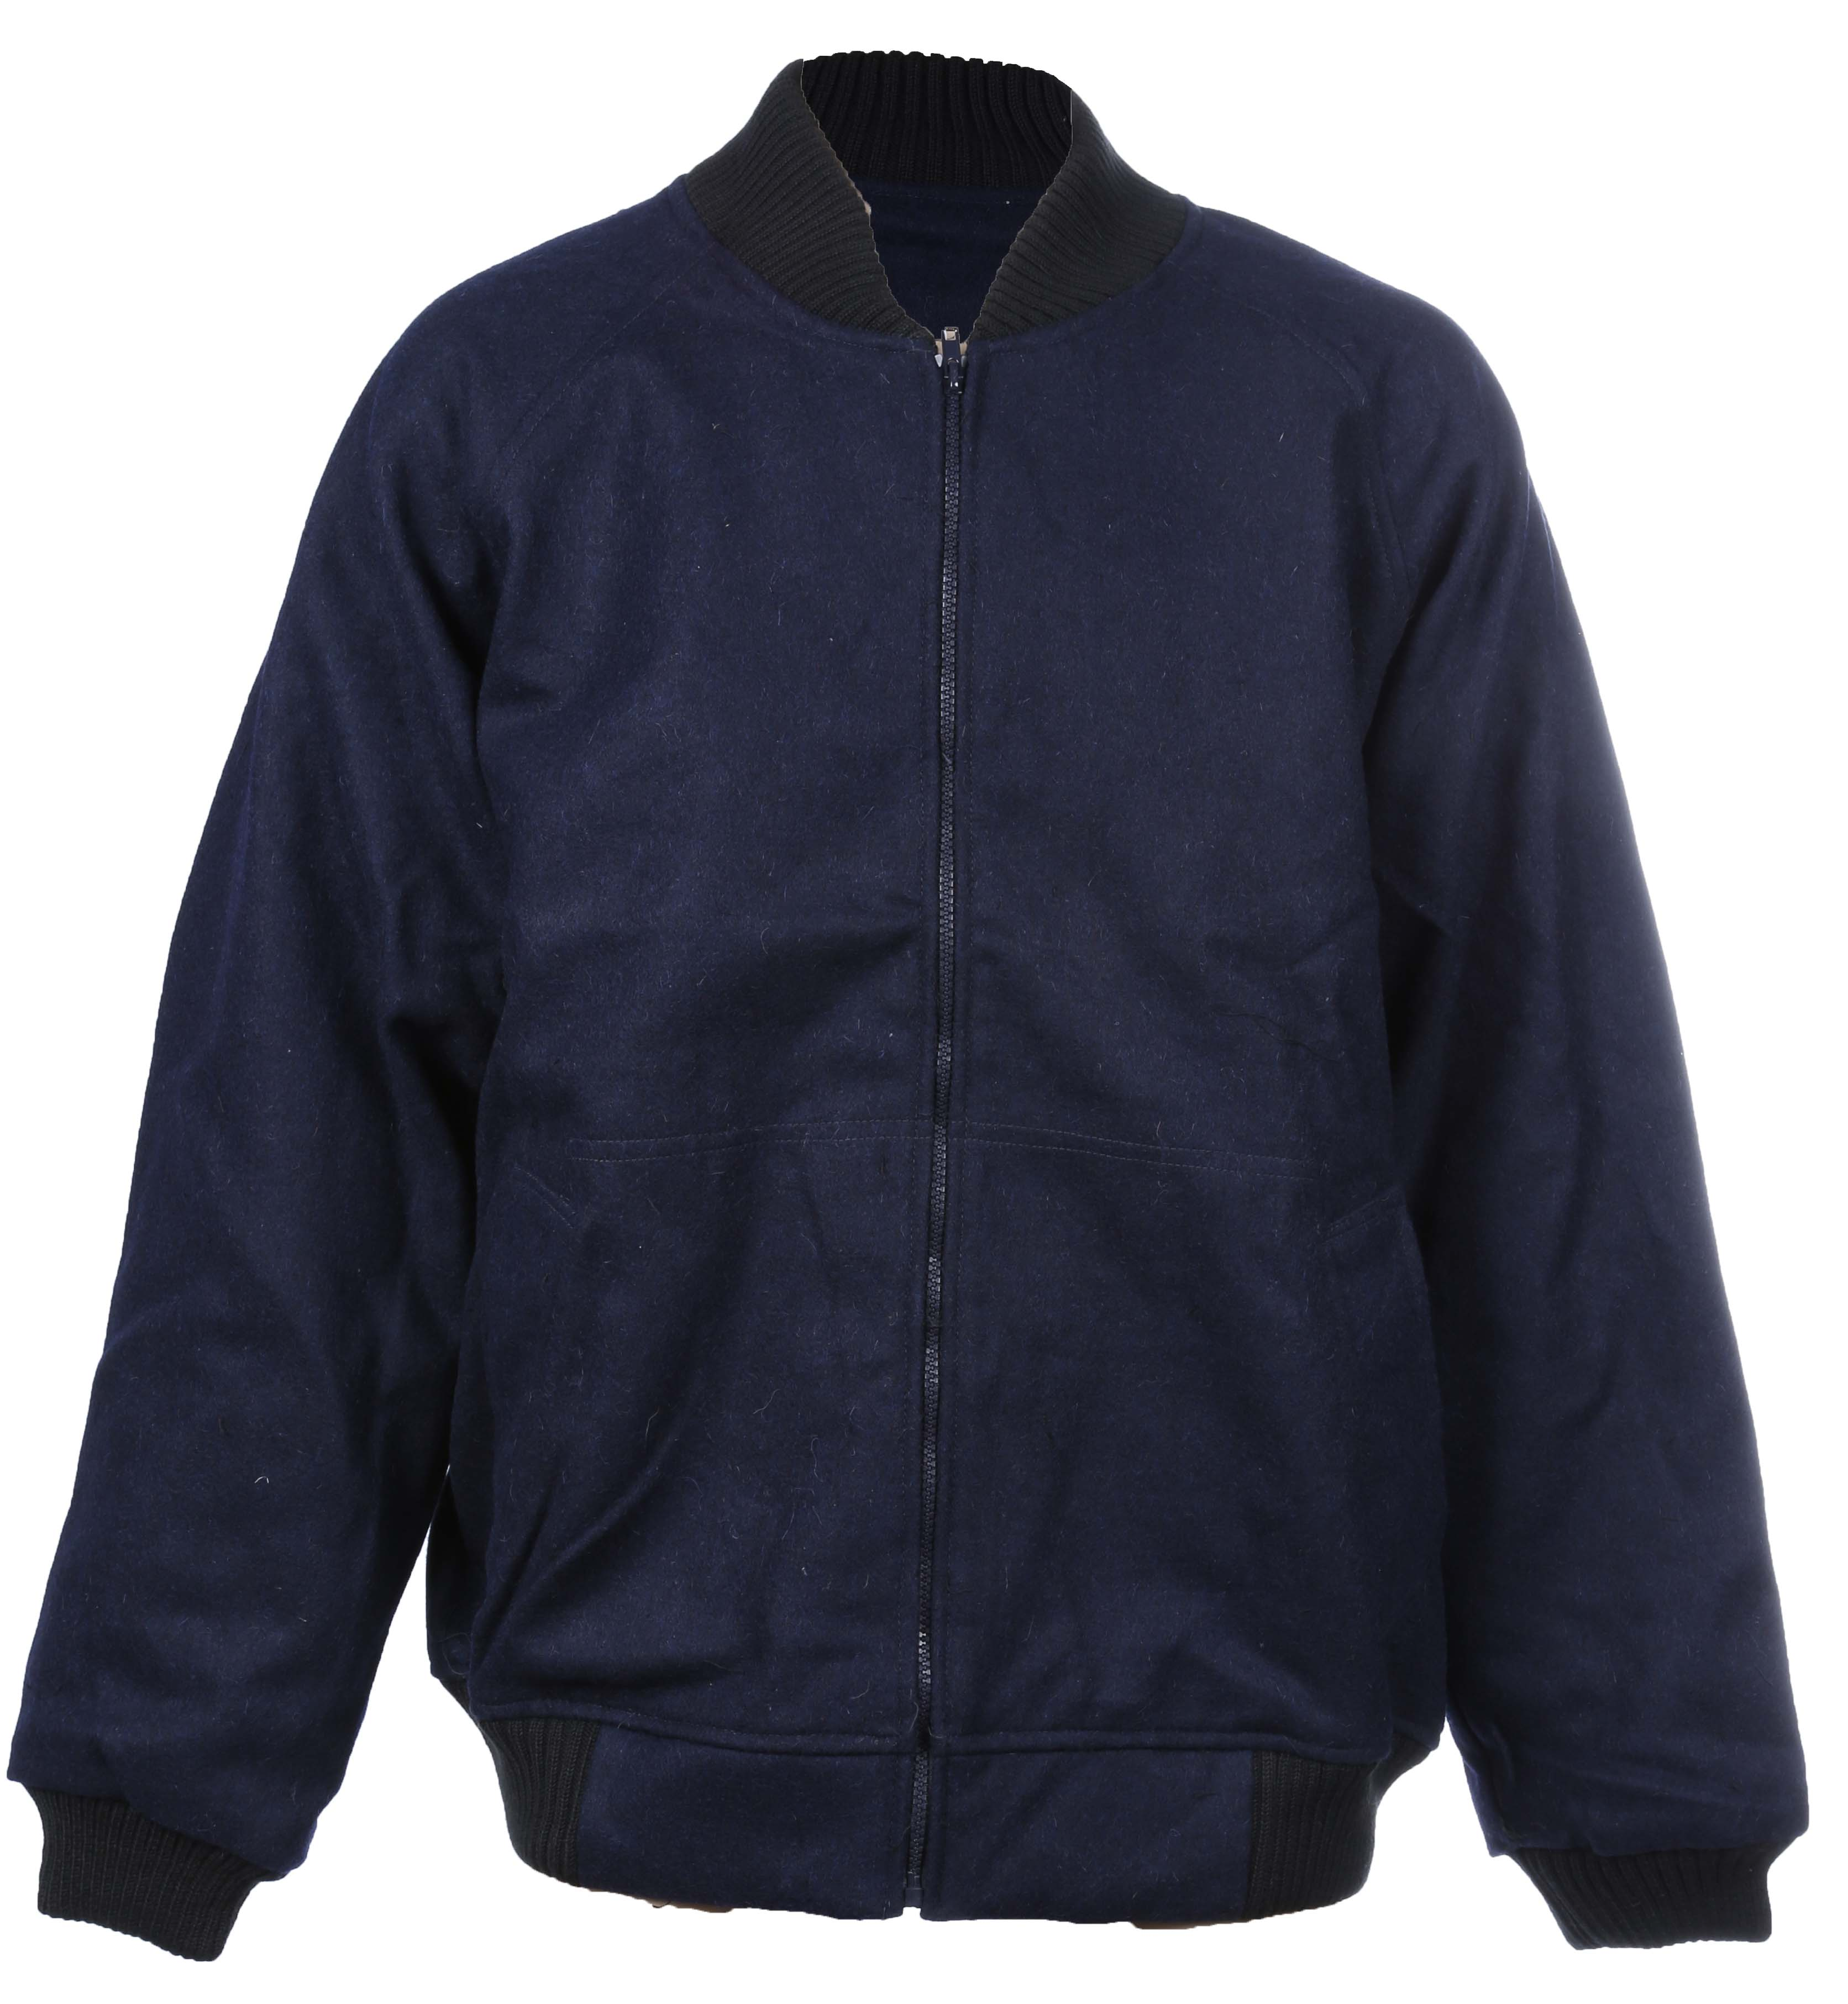 OUTDOOR WORLD Woollen Bluey Jacket, Cotton Lining, Size 5XL, Ribbed Knitted